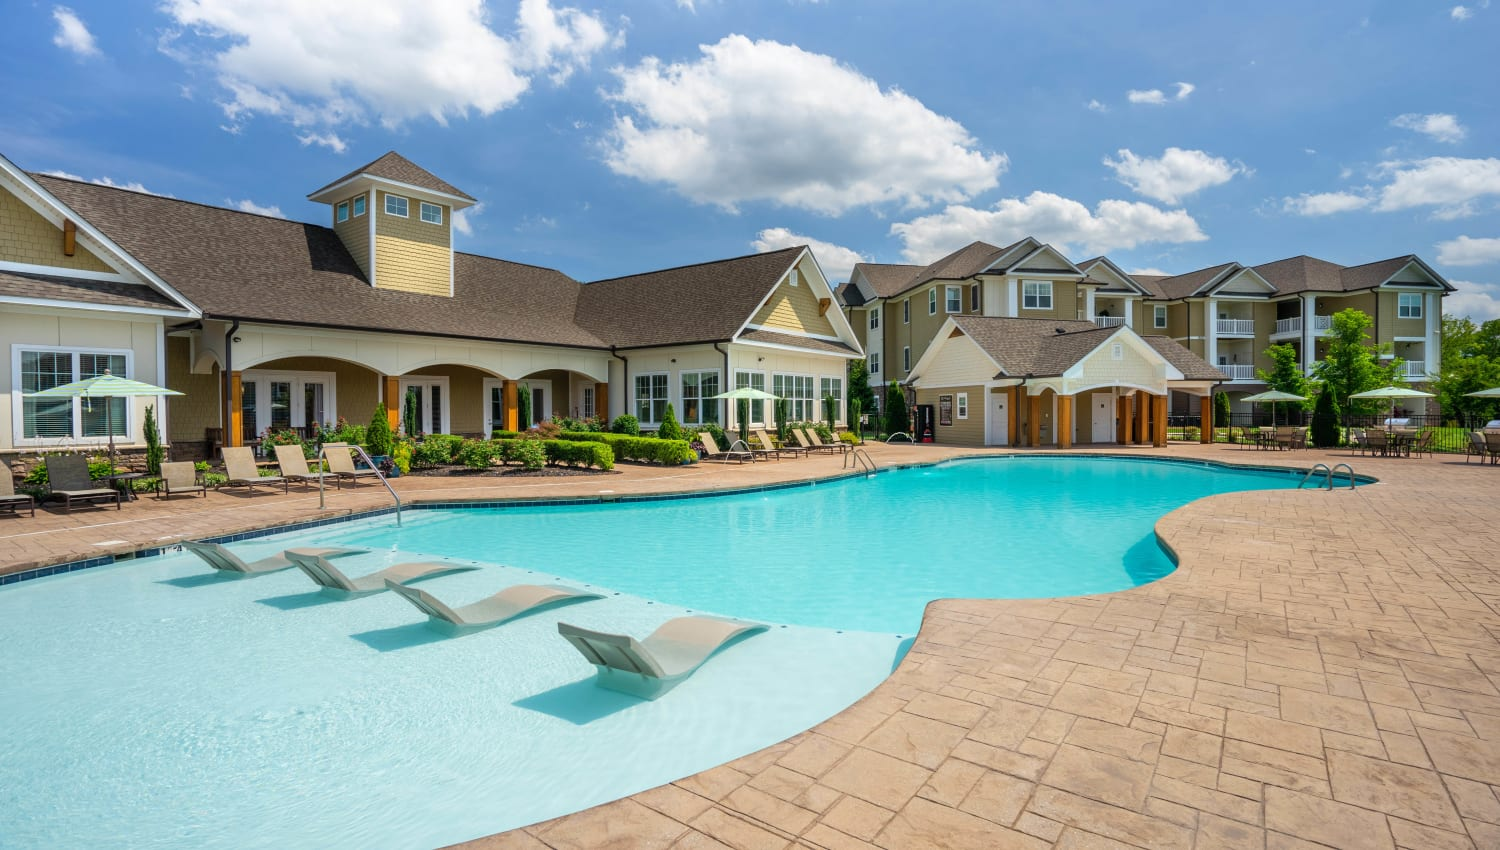 Sun deck in the pool at Legends at White Oak in Ooltewah, Tennessee